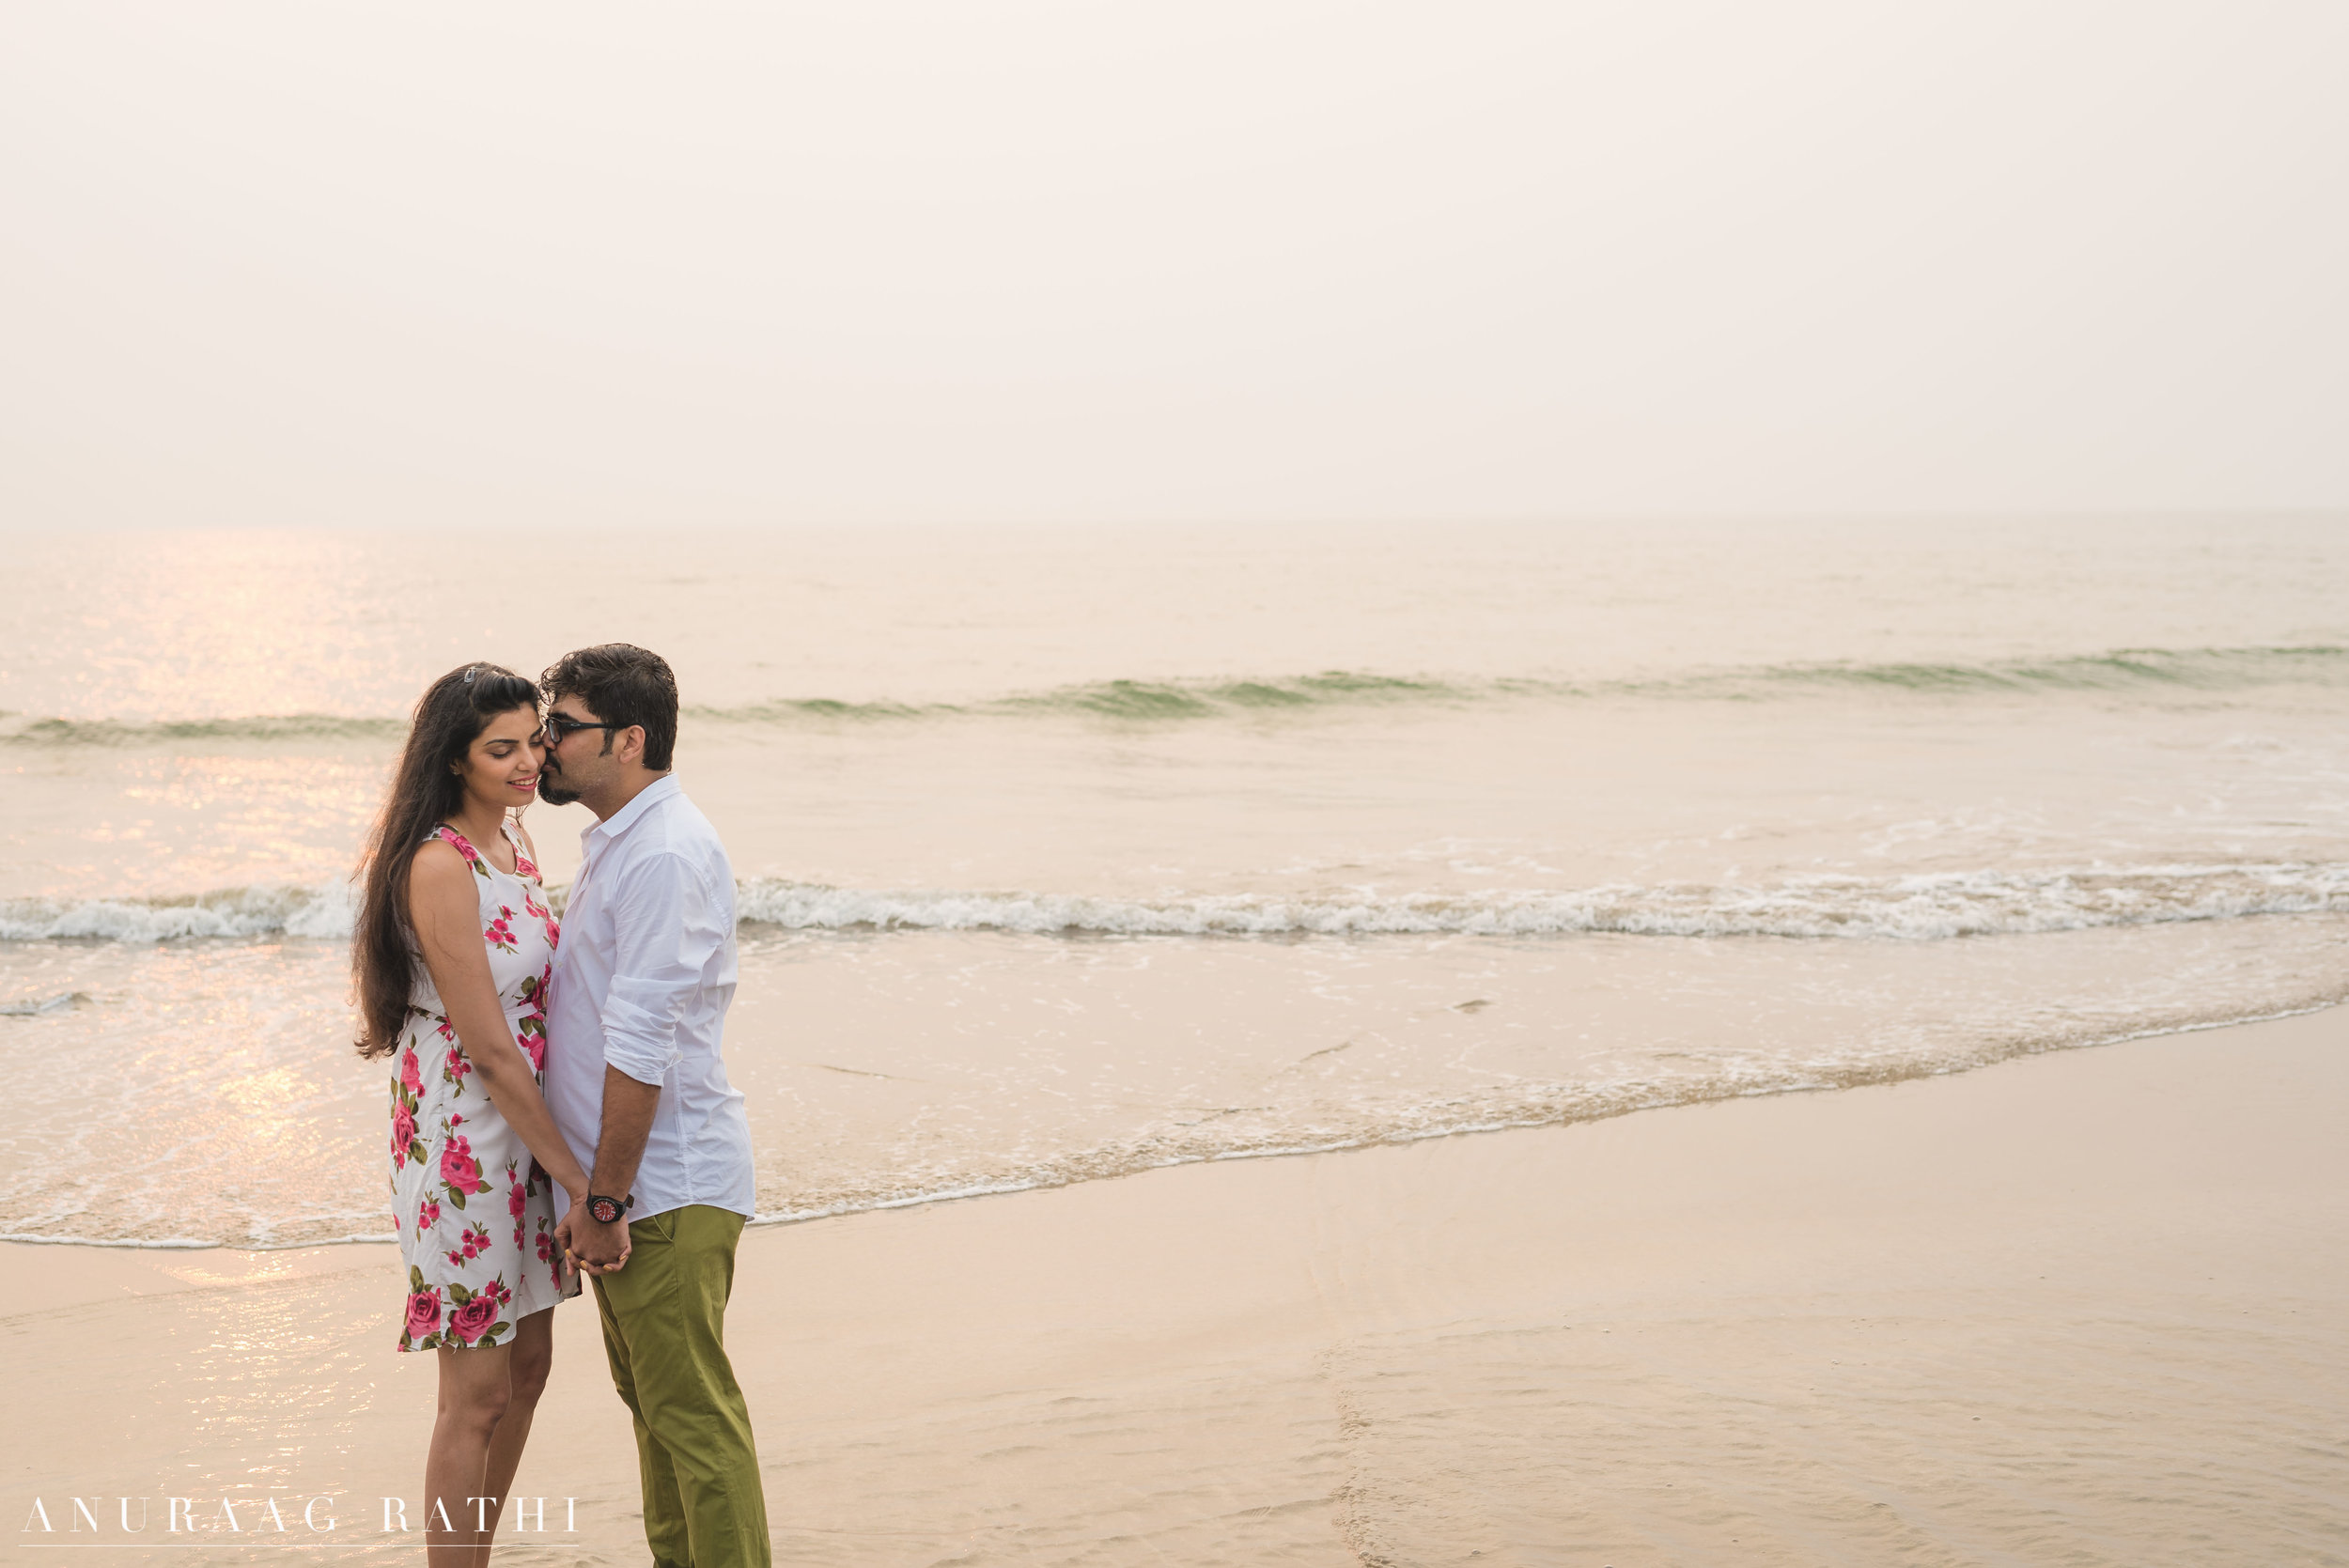 Anuraag Rathi Candid Wedding Photographer